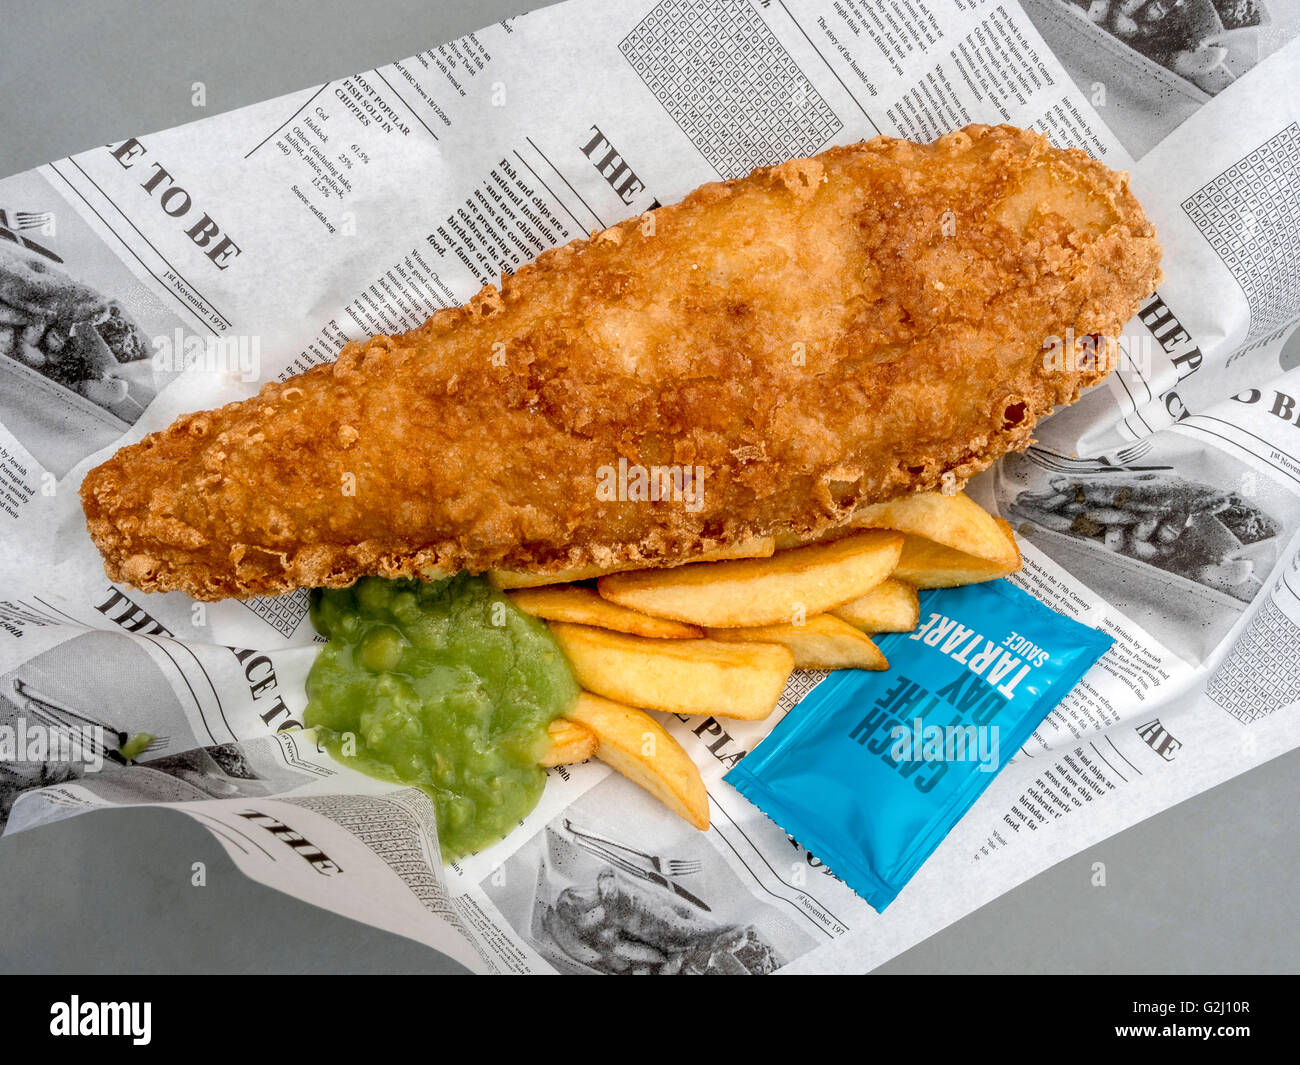 Fish and chips, typical British food, United Kingdom, Europe - Stock Image